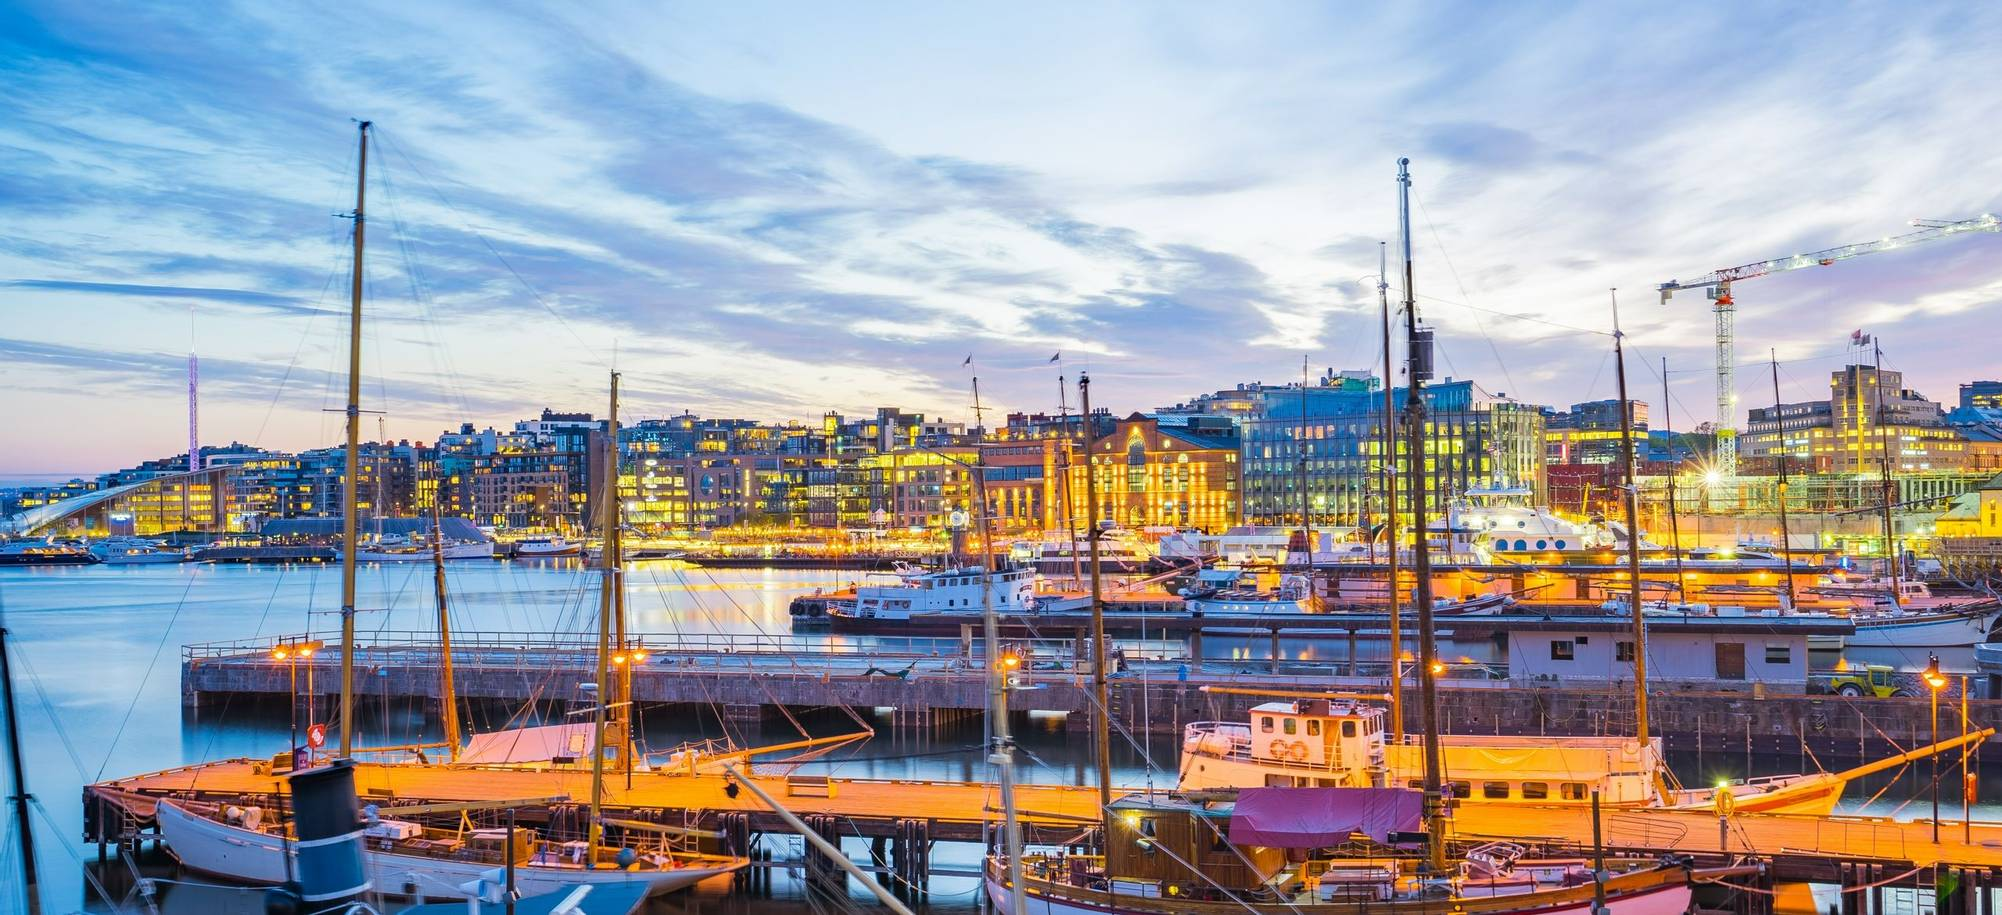 Oslo city, Oslo port with boats and yachts at twilight in Norway.